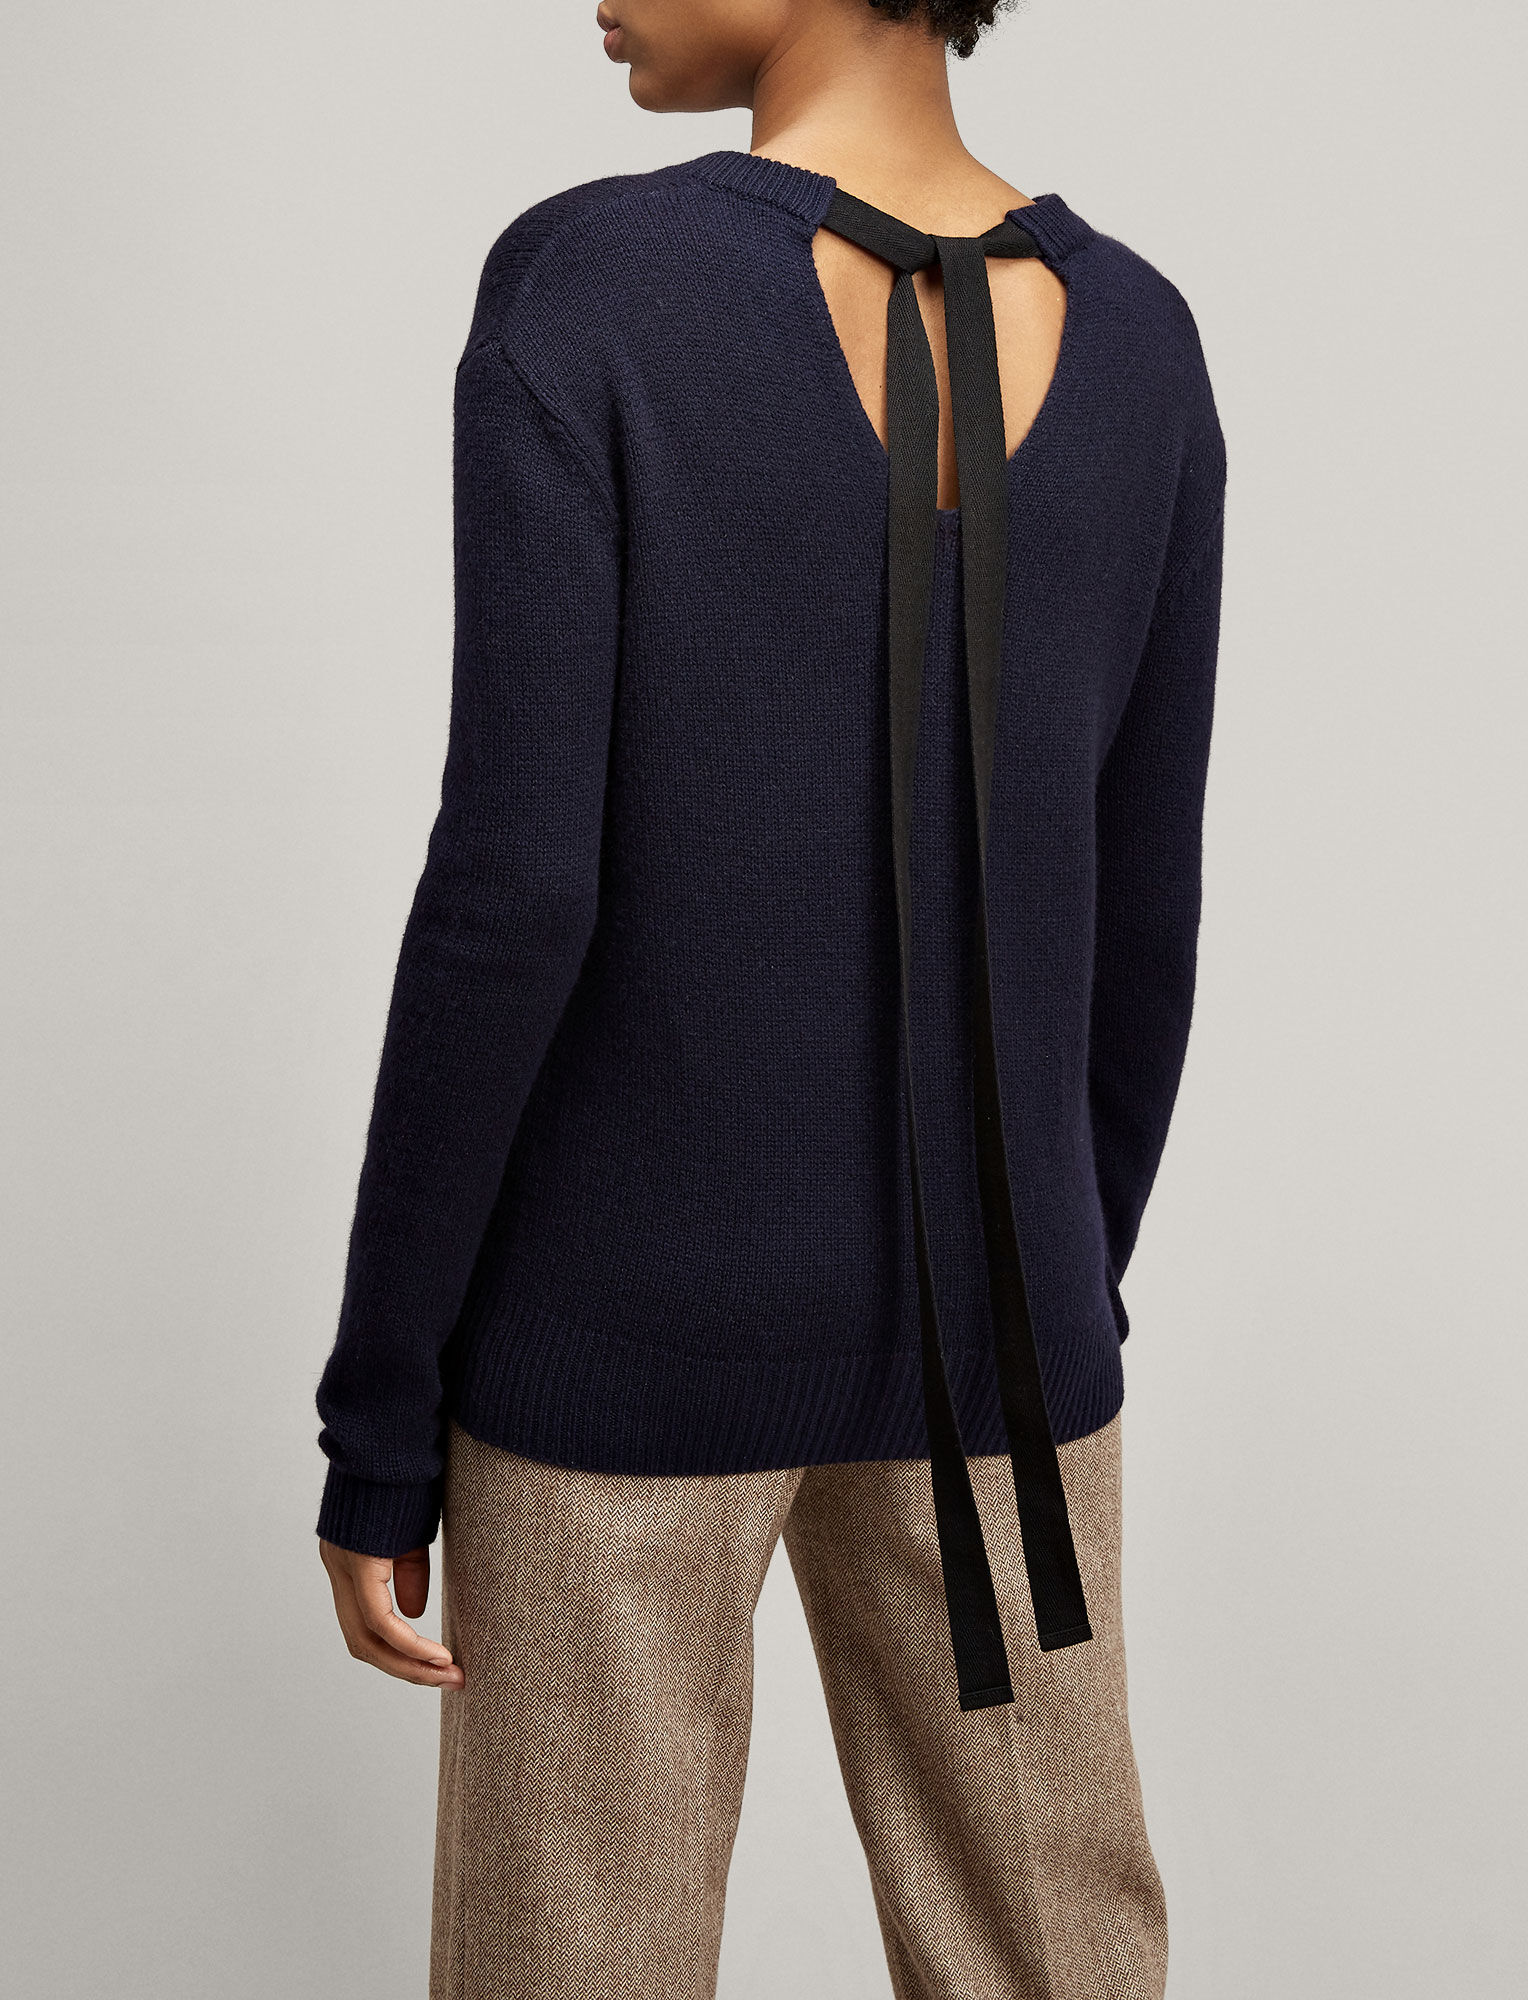 Joseph, Open Cashmere V Neck Top, in NAVY